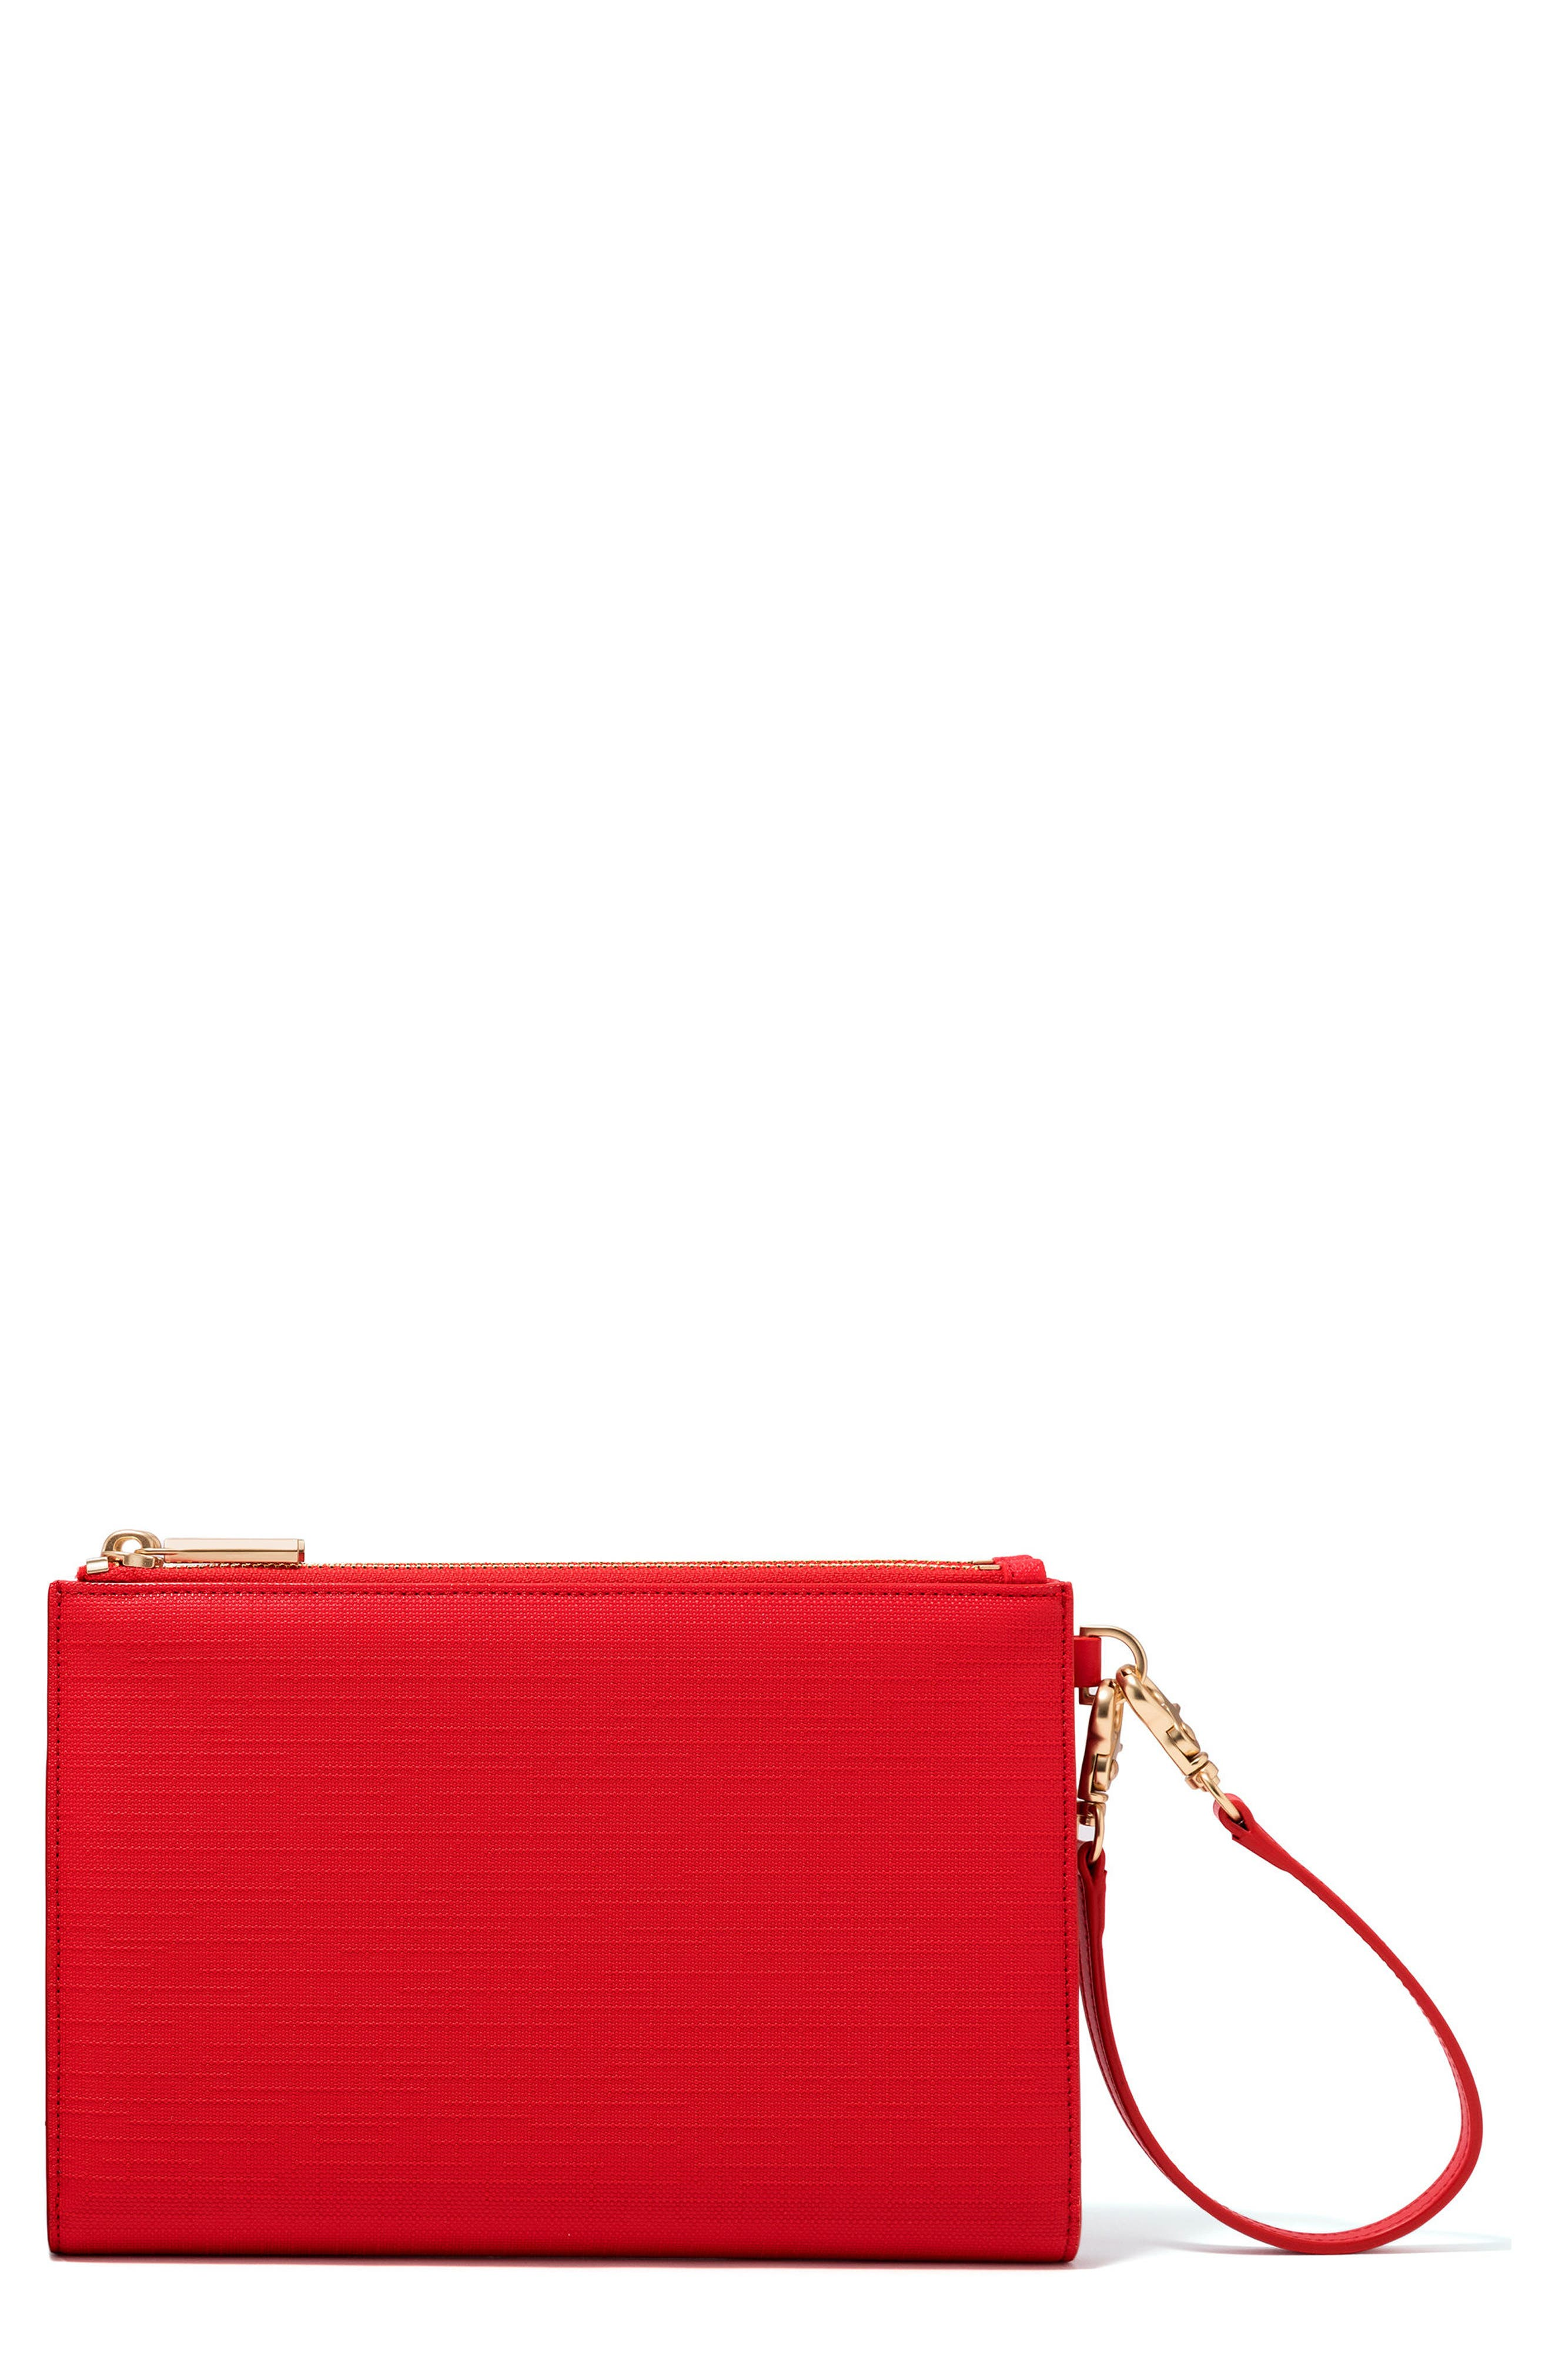 Alternate Image 1 Selected - Dagne Dover Signature Essentials Coated Canvas Clutch/Wallet